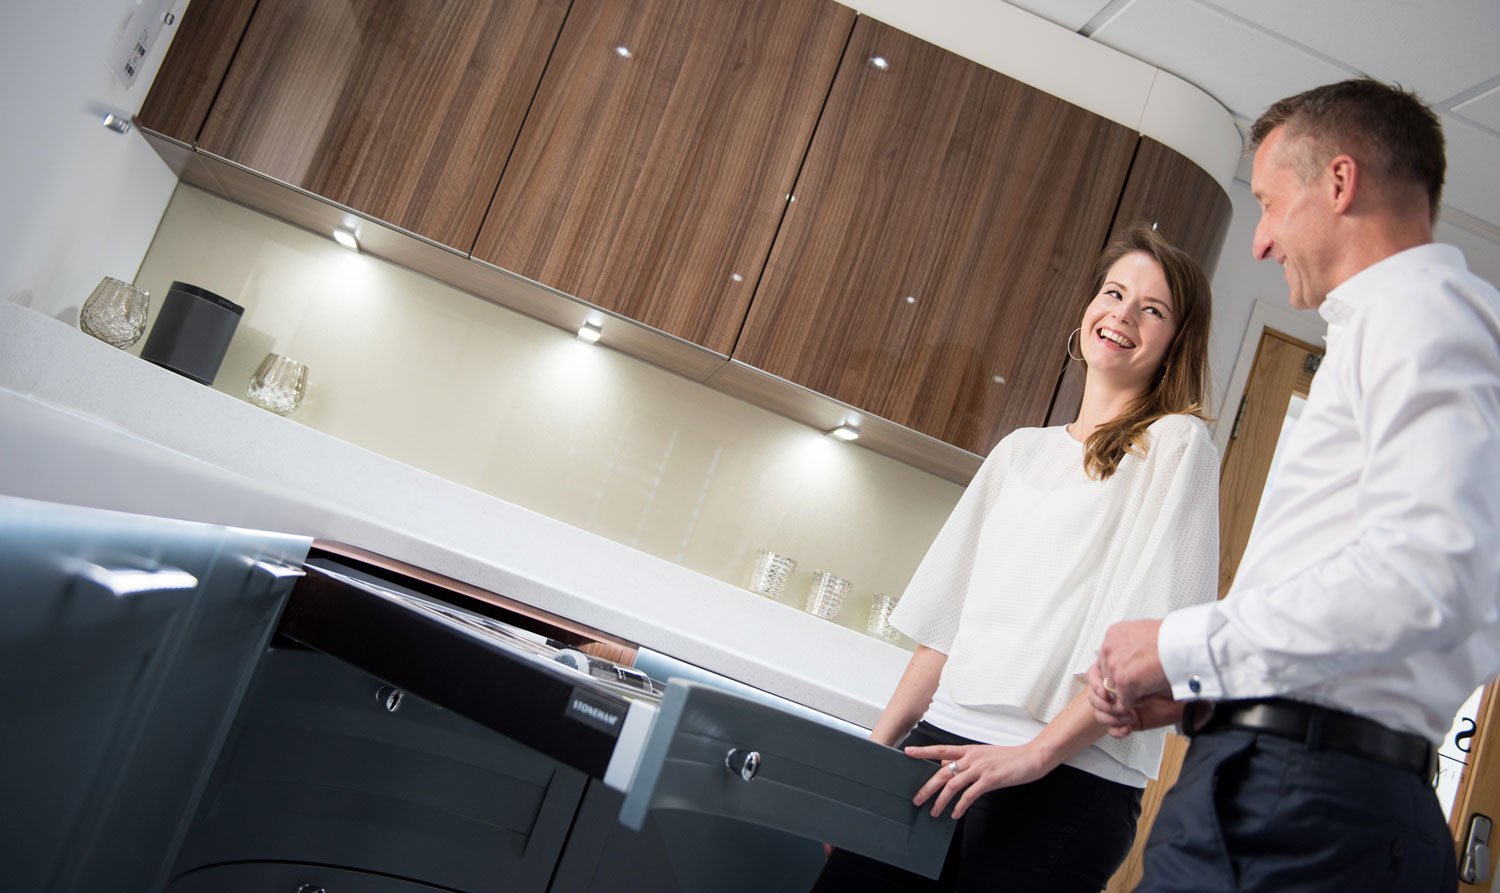 lady and man looking at a kitchen at Stoneham Kitchens showroom